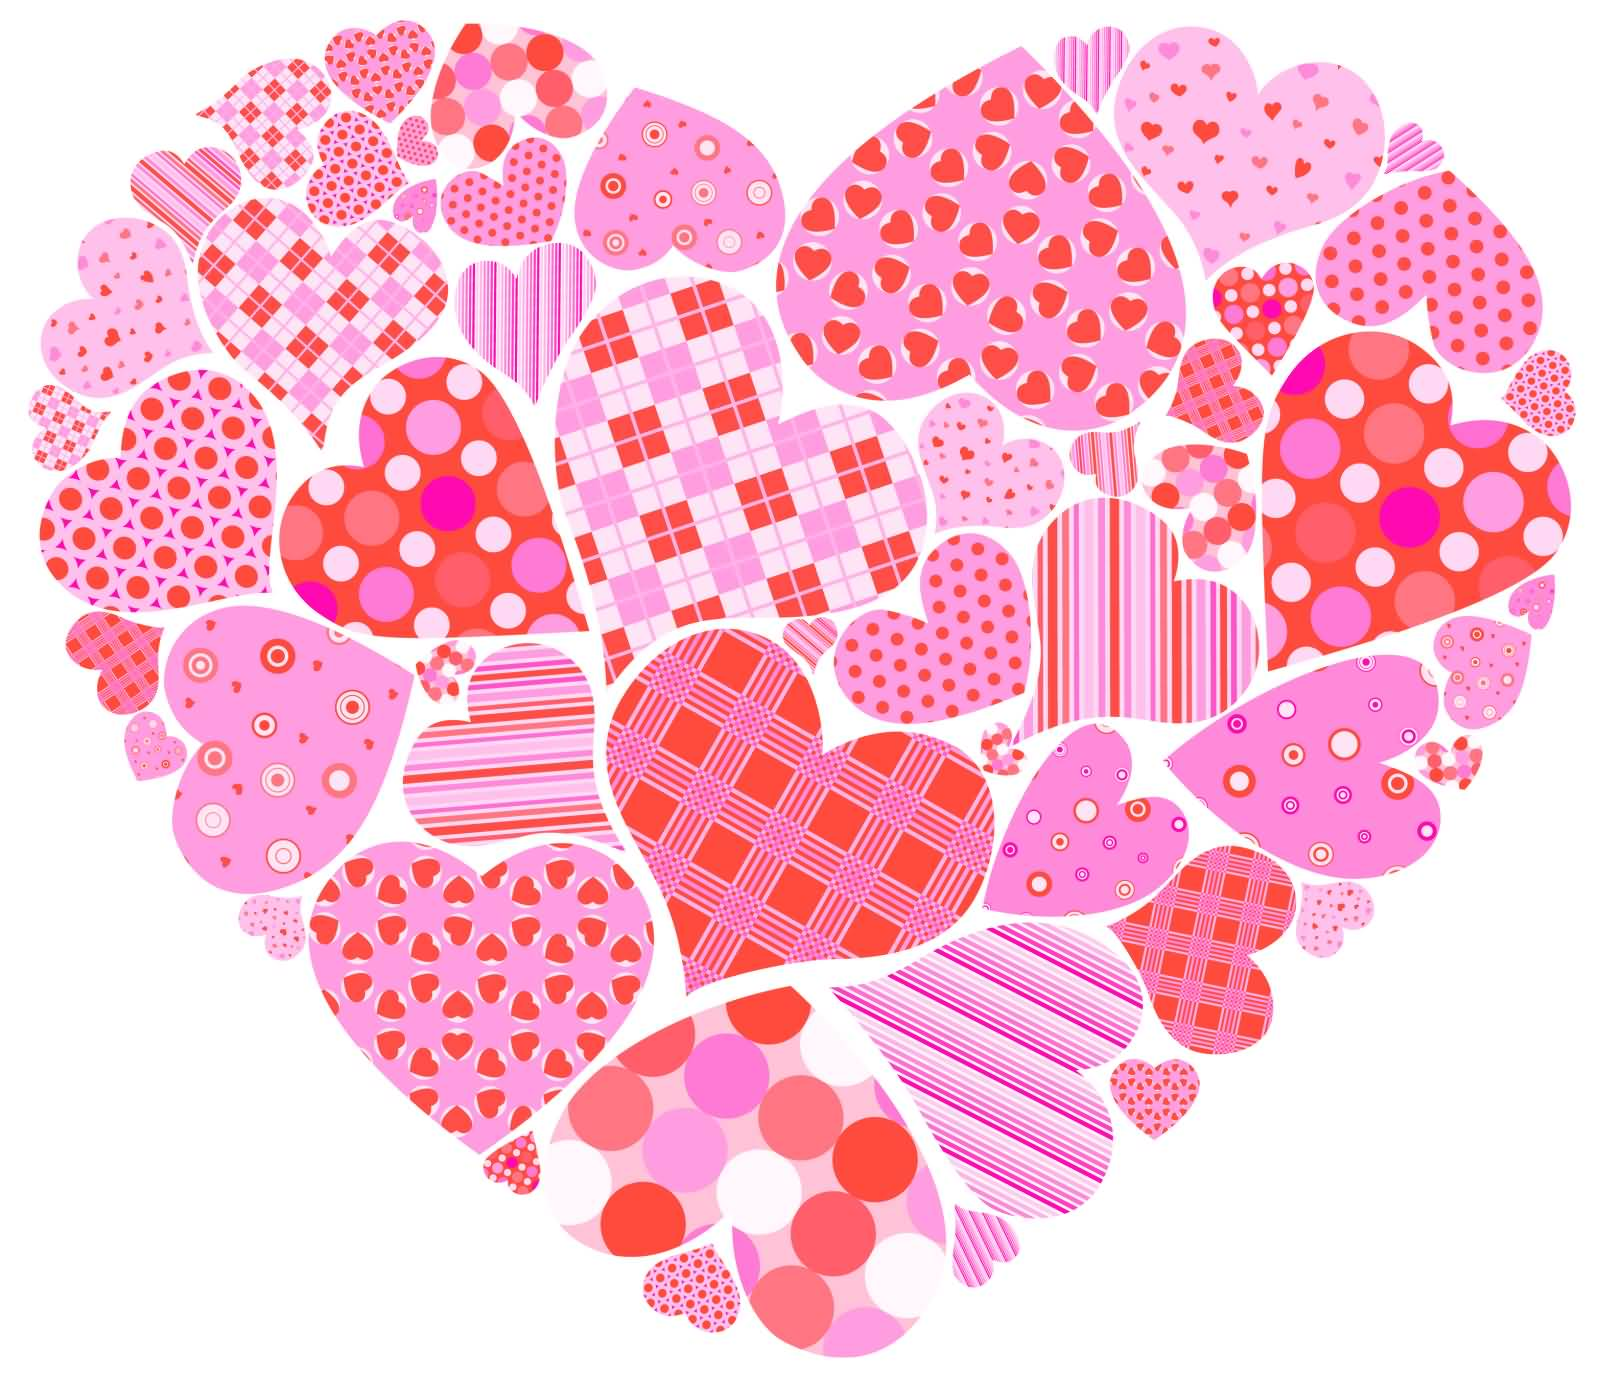 60 Happy Valentine S Day Heart Pictures And Images